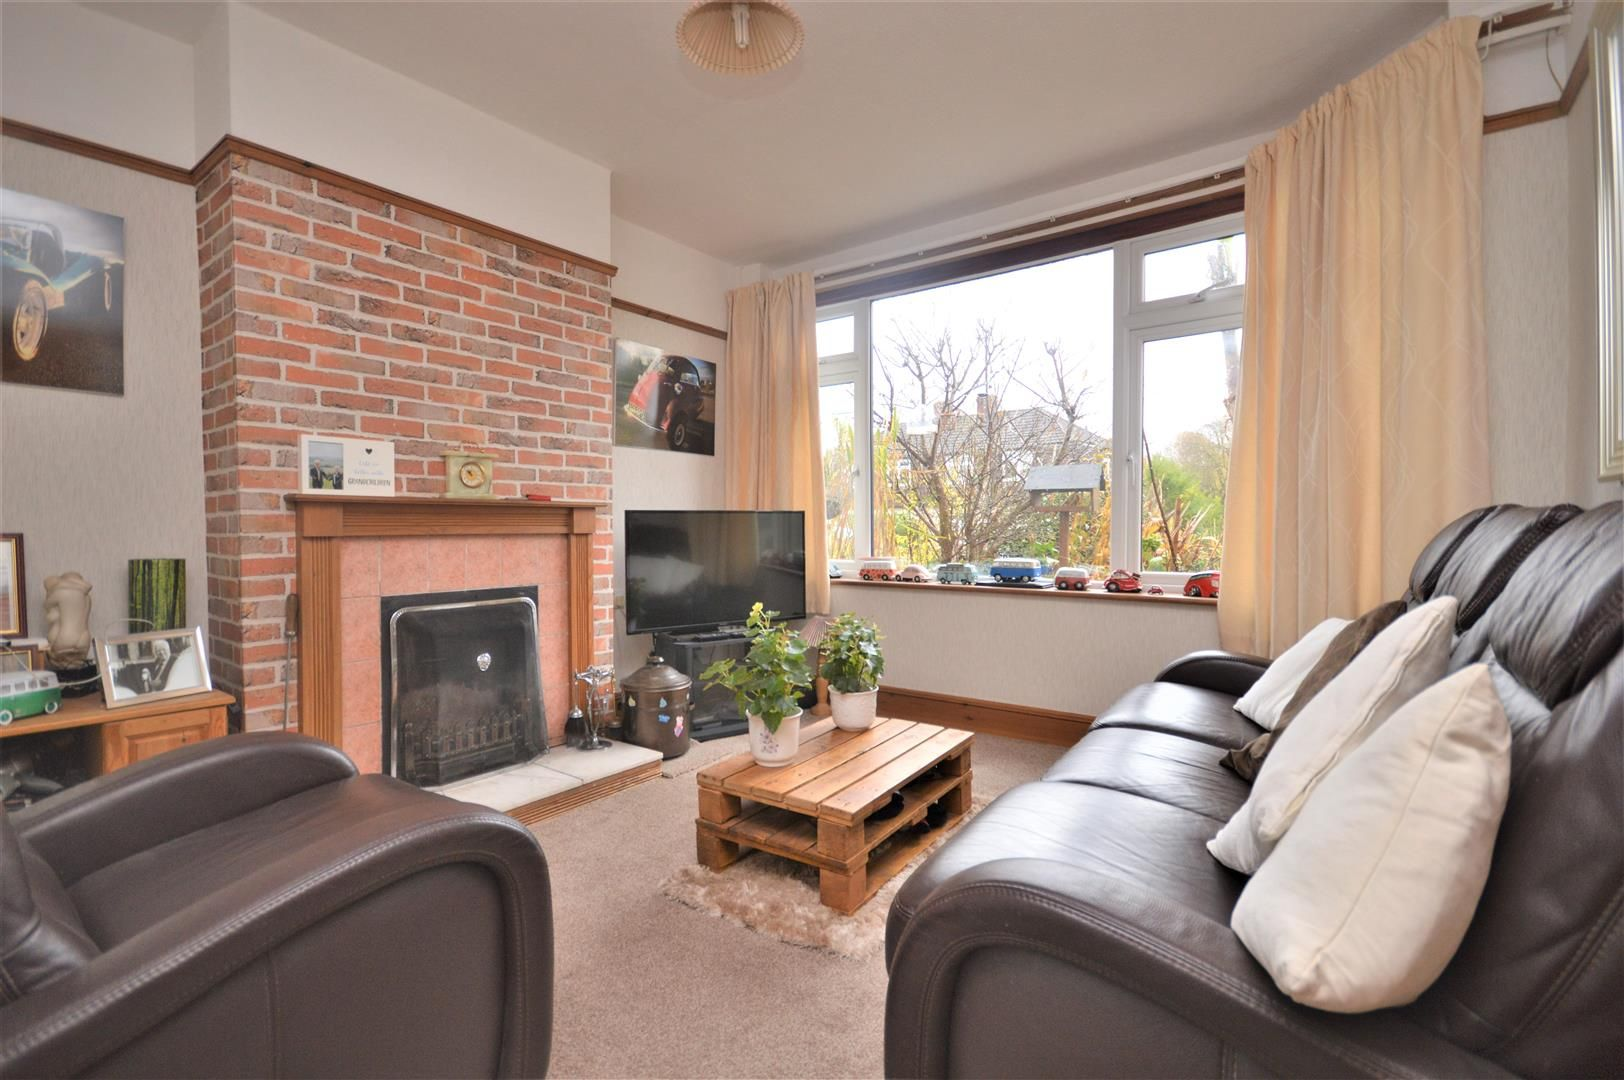 3 bed semi-detached for sale in Hereford  - Property Image 5